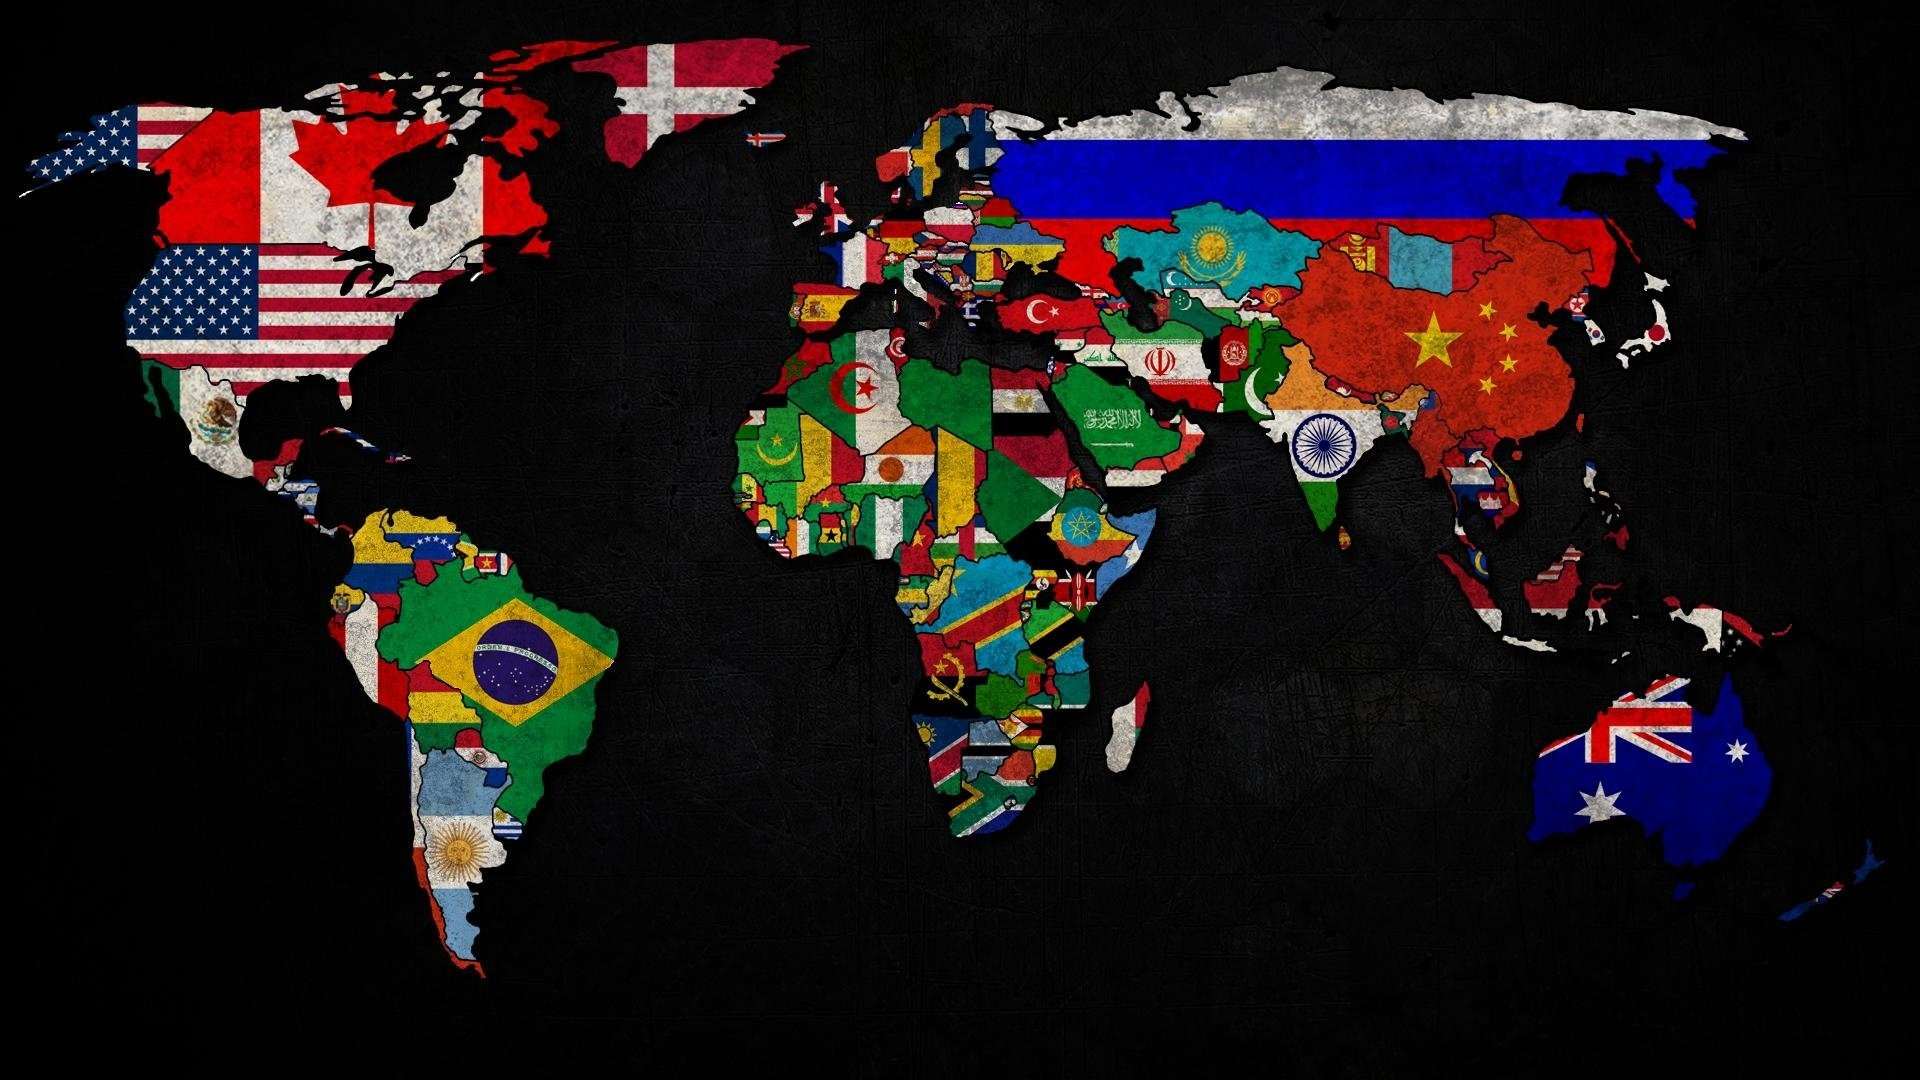 World map computer wallpaper 62 images download 1920x1080 hd wallpaper background id400645 1920x1080 misc world map publicscrutiny Choice Image